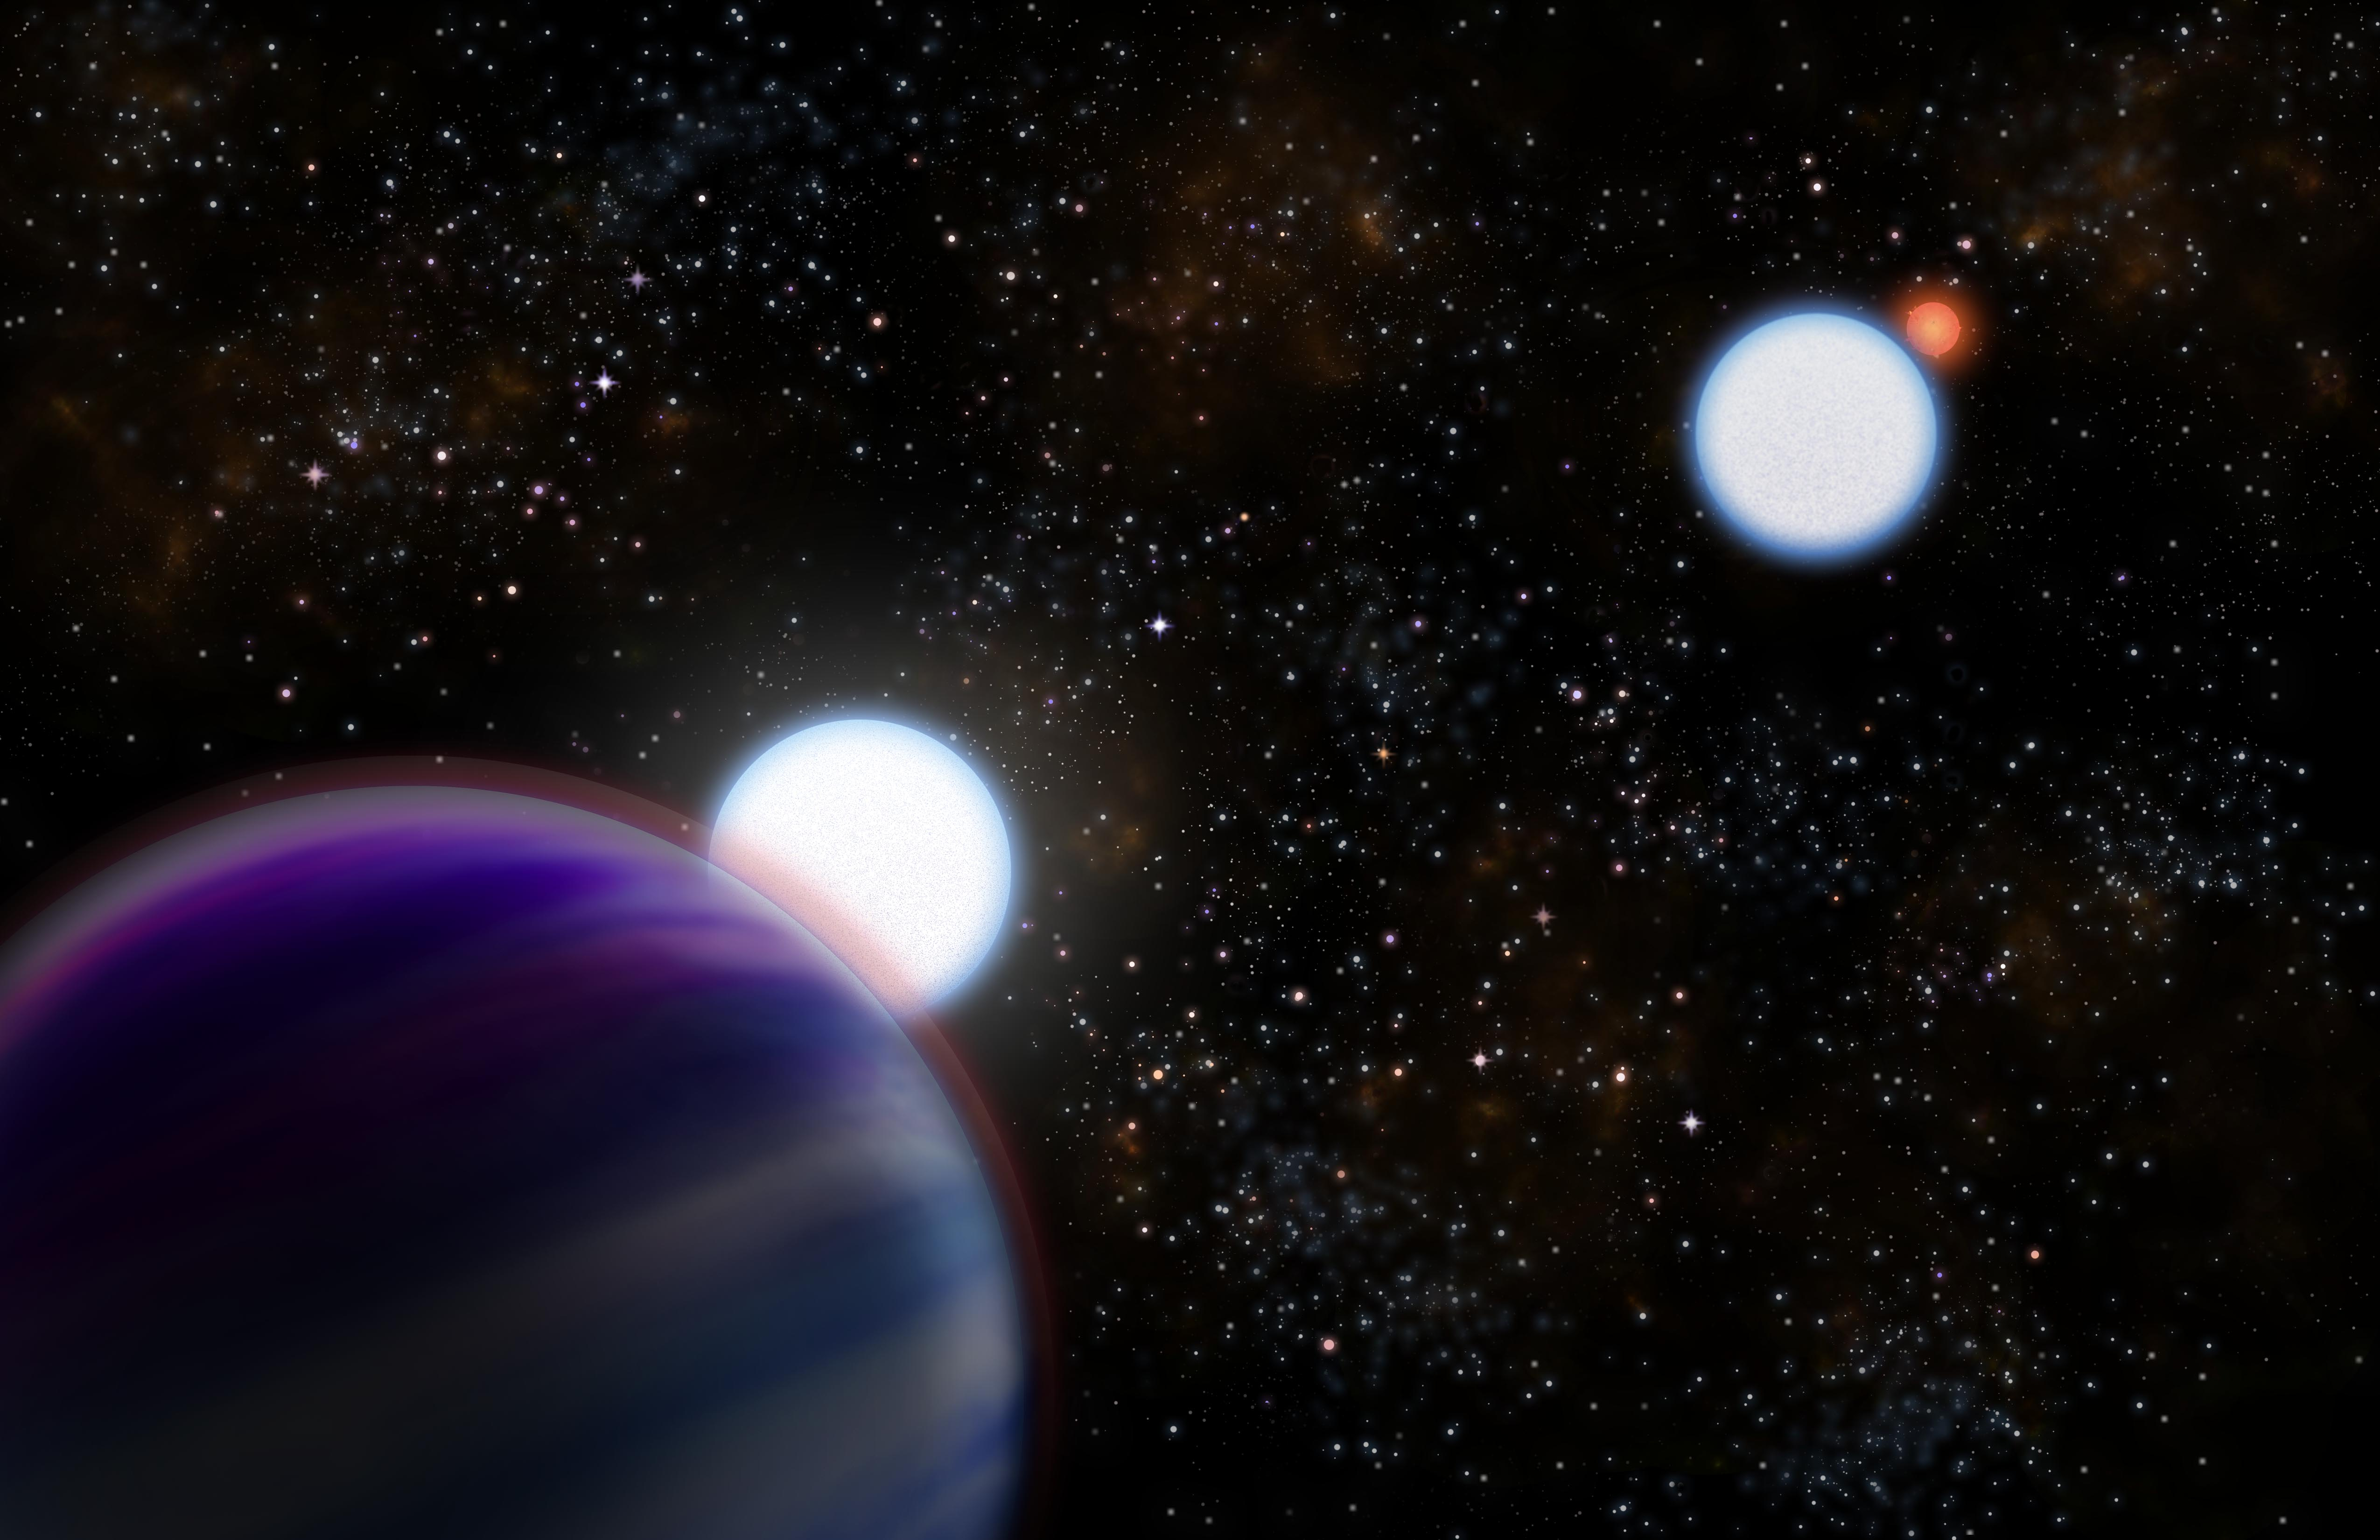 Exoplanets Can't Hide Their Secrets from Innovative New